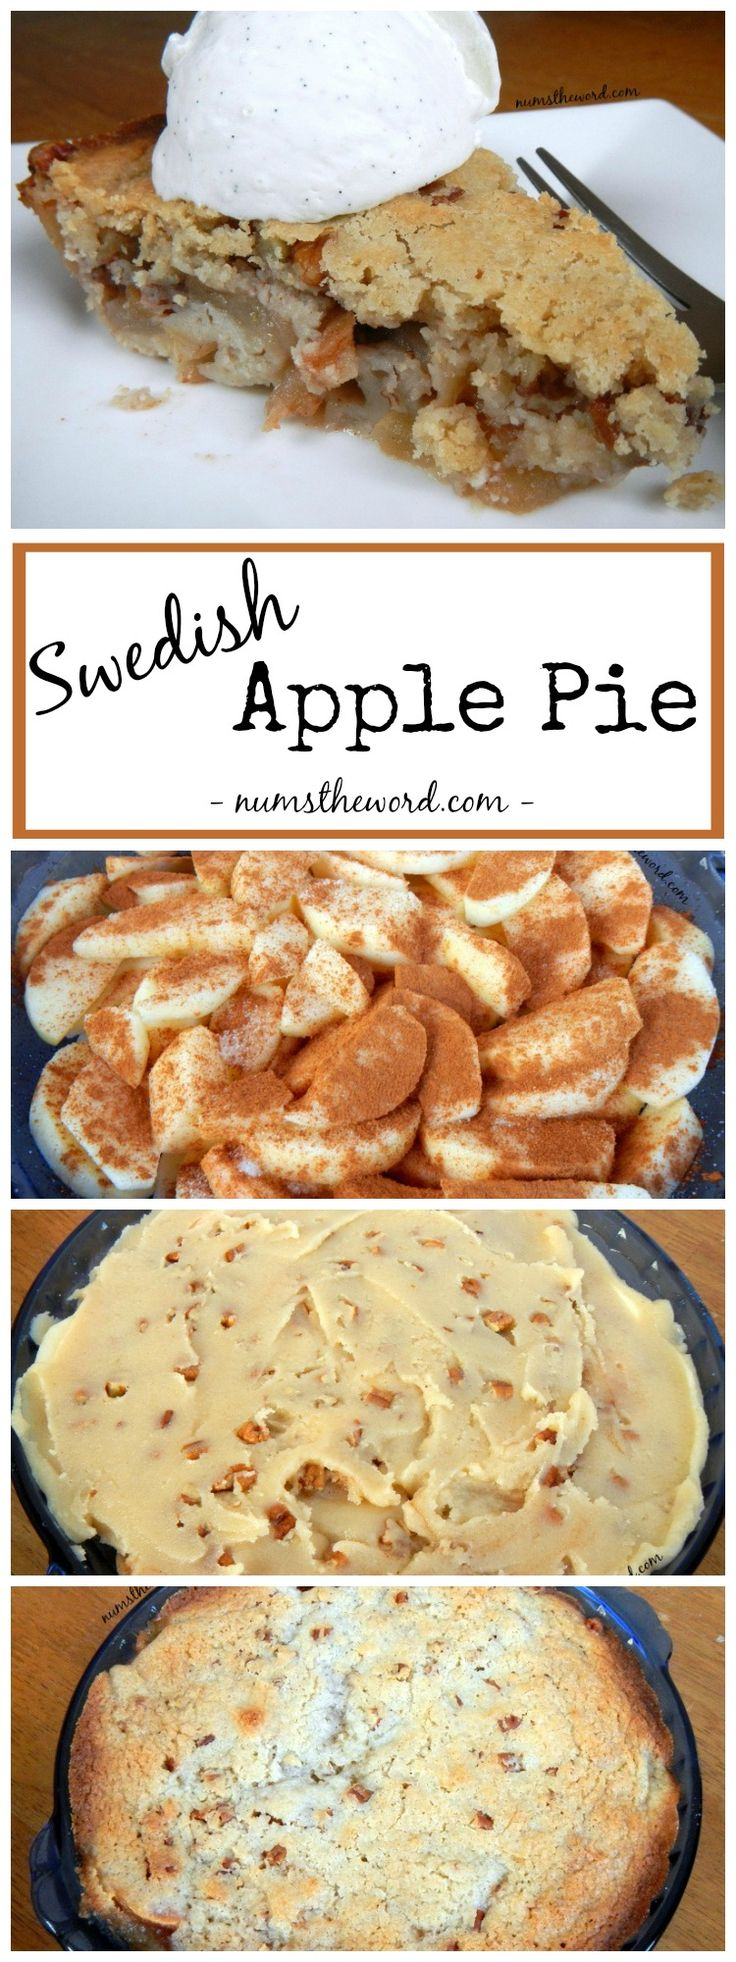 Swedish Apple Pie - If you're looking for a new twist on a classic, try this crust-less Swedish Apple Pie. apple filling topped with an almond pecan sugar cookie. Simple & delicious!